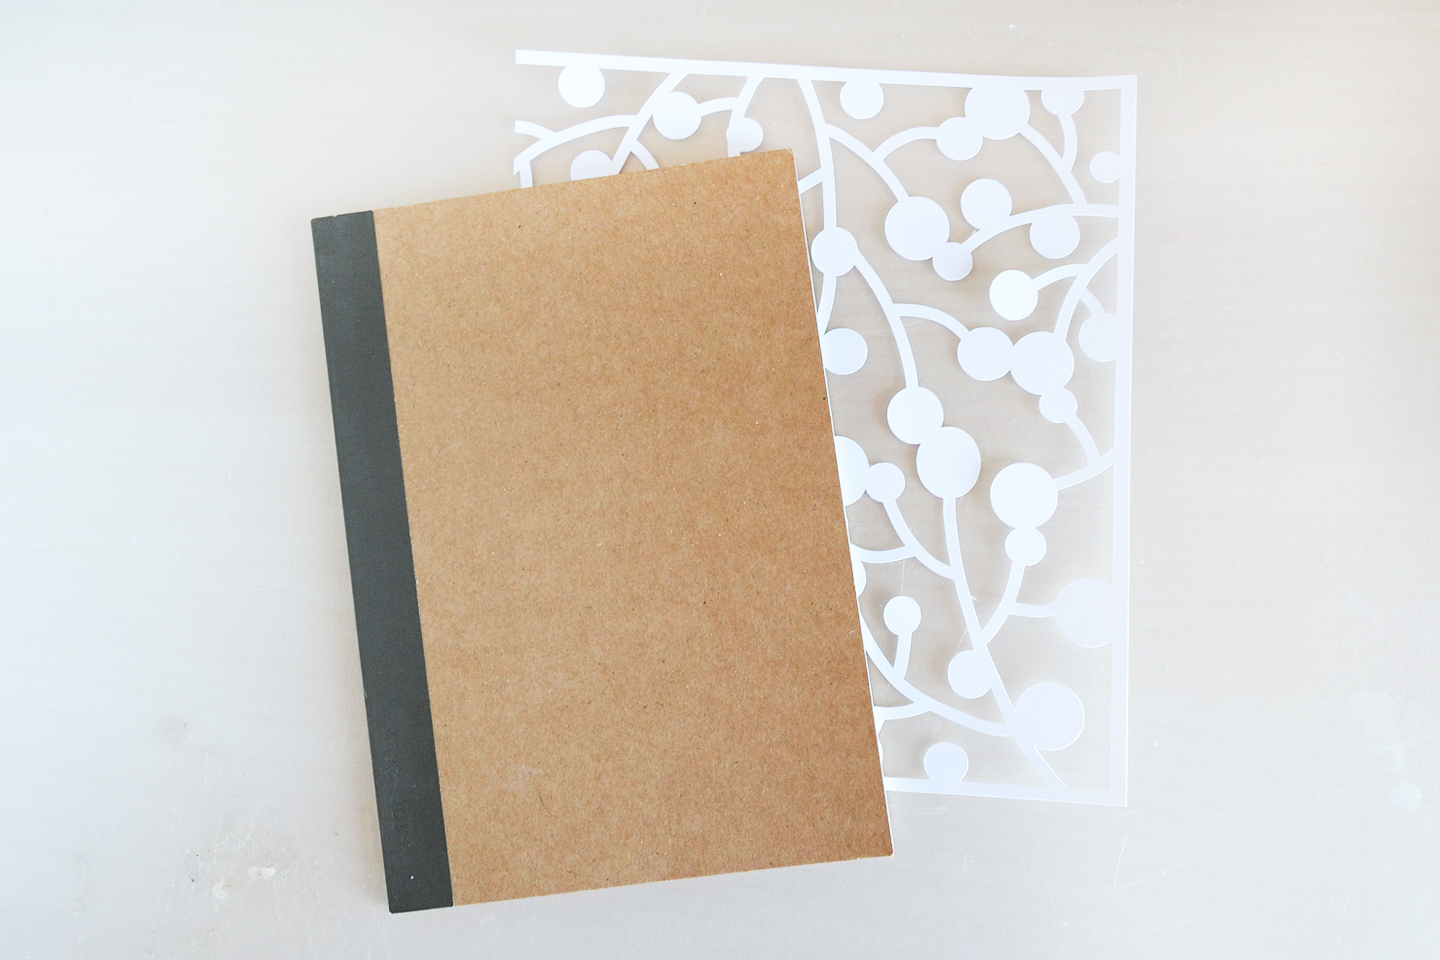 lasercut-overlay-and-notebook